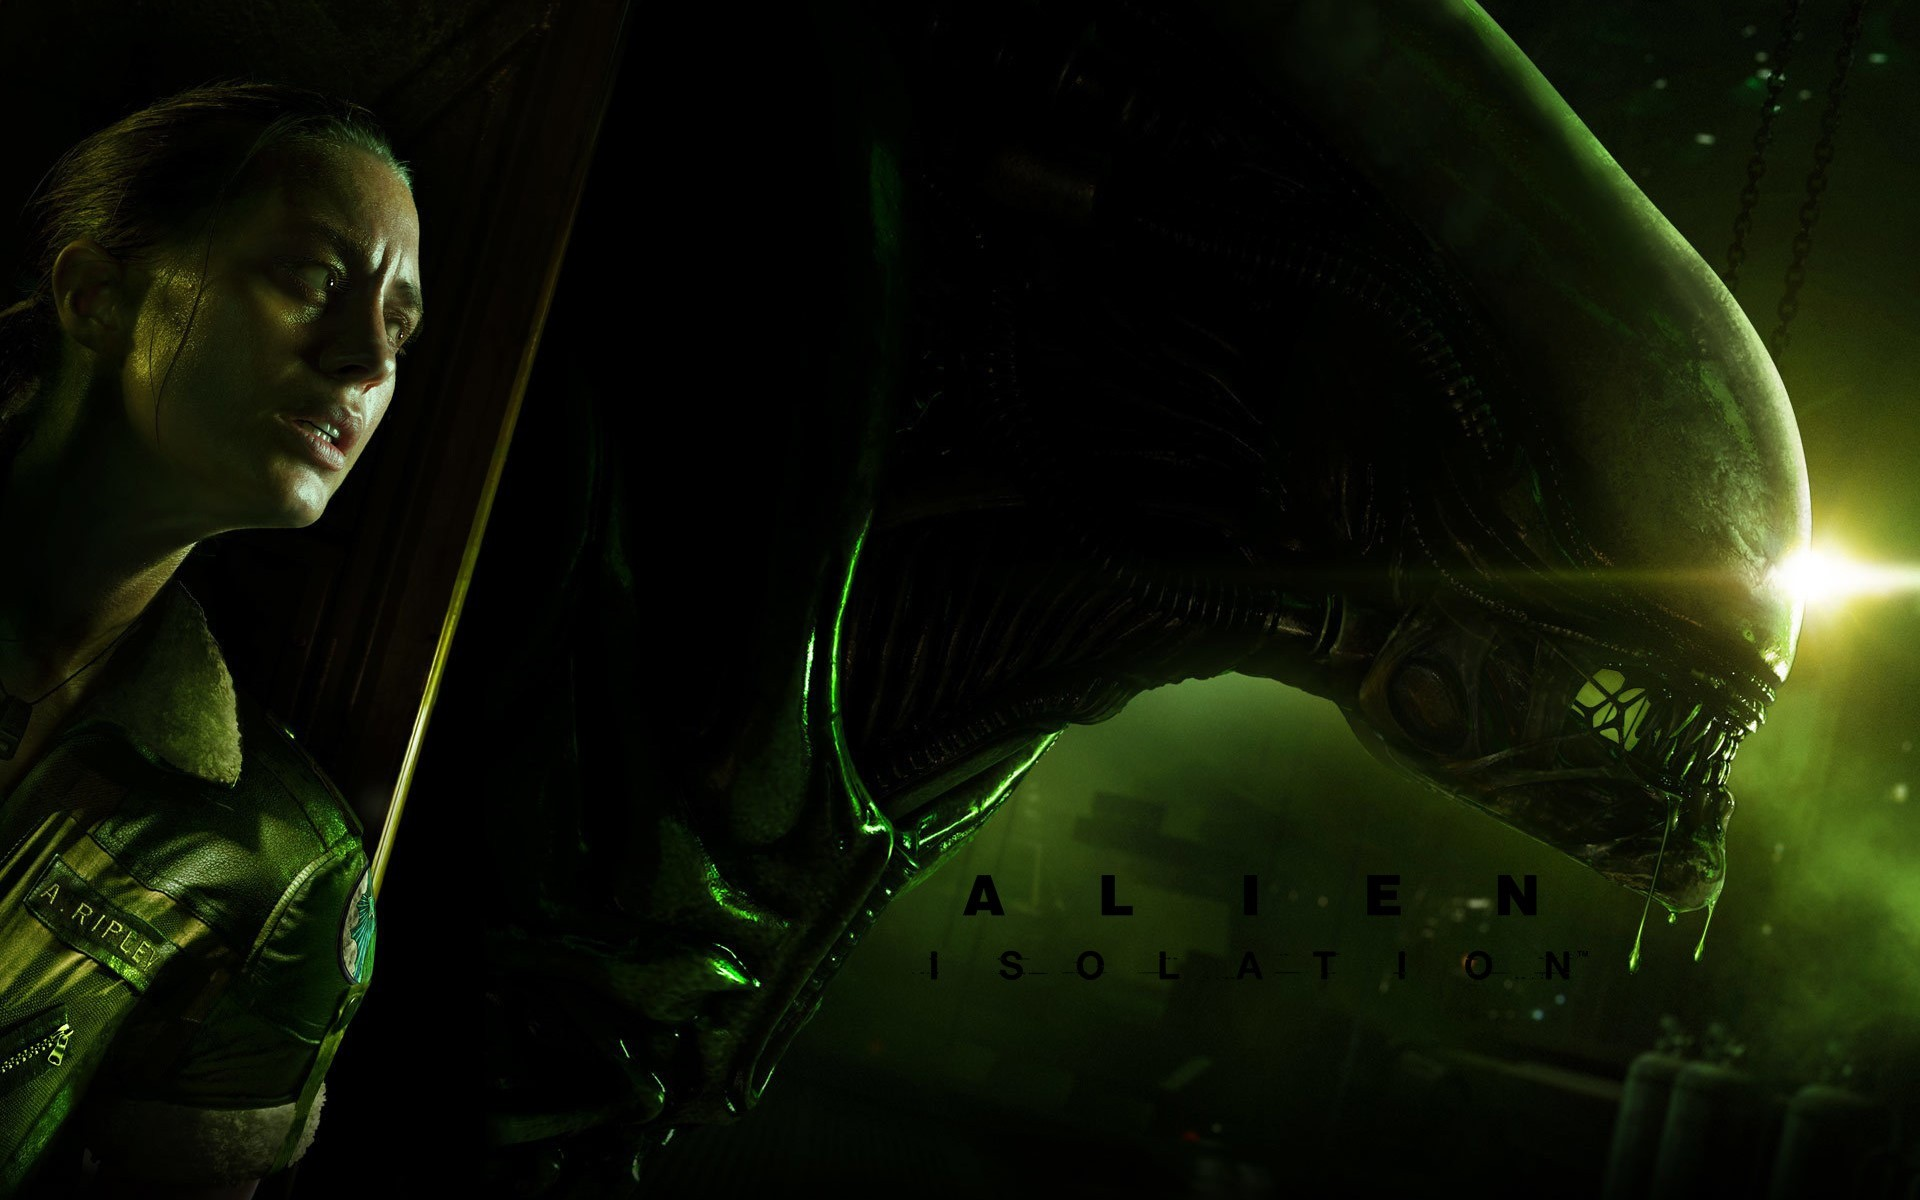 Fondos de pantalla Alien Isolation